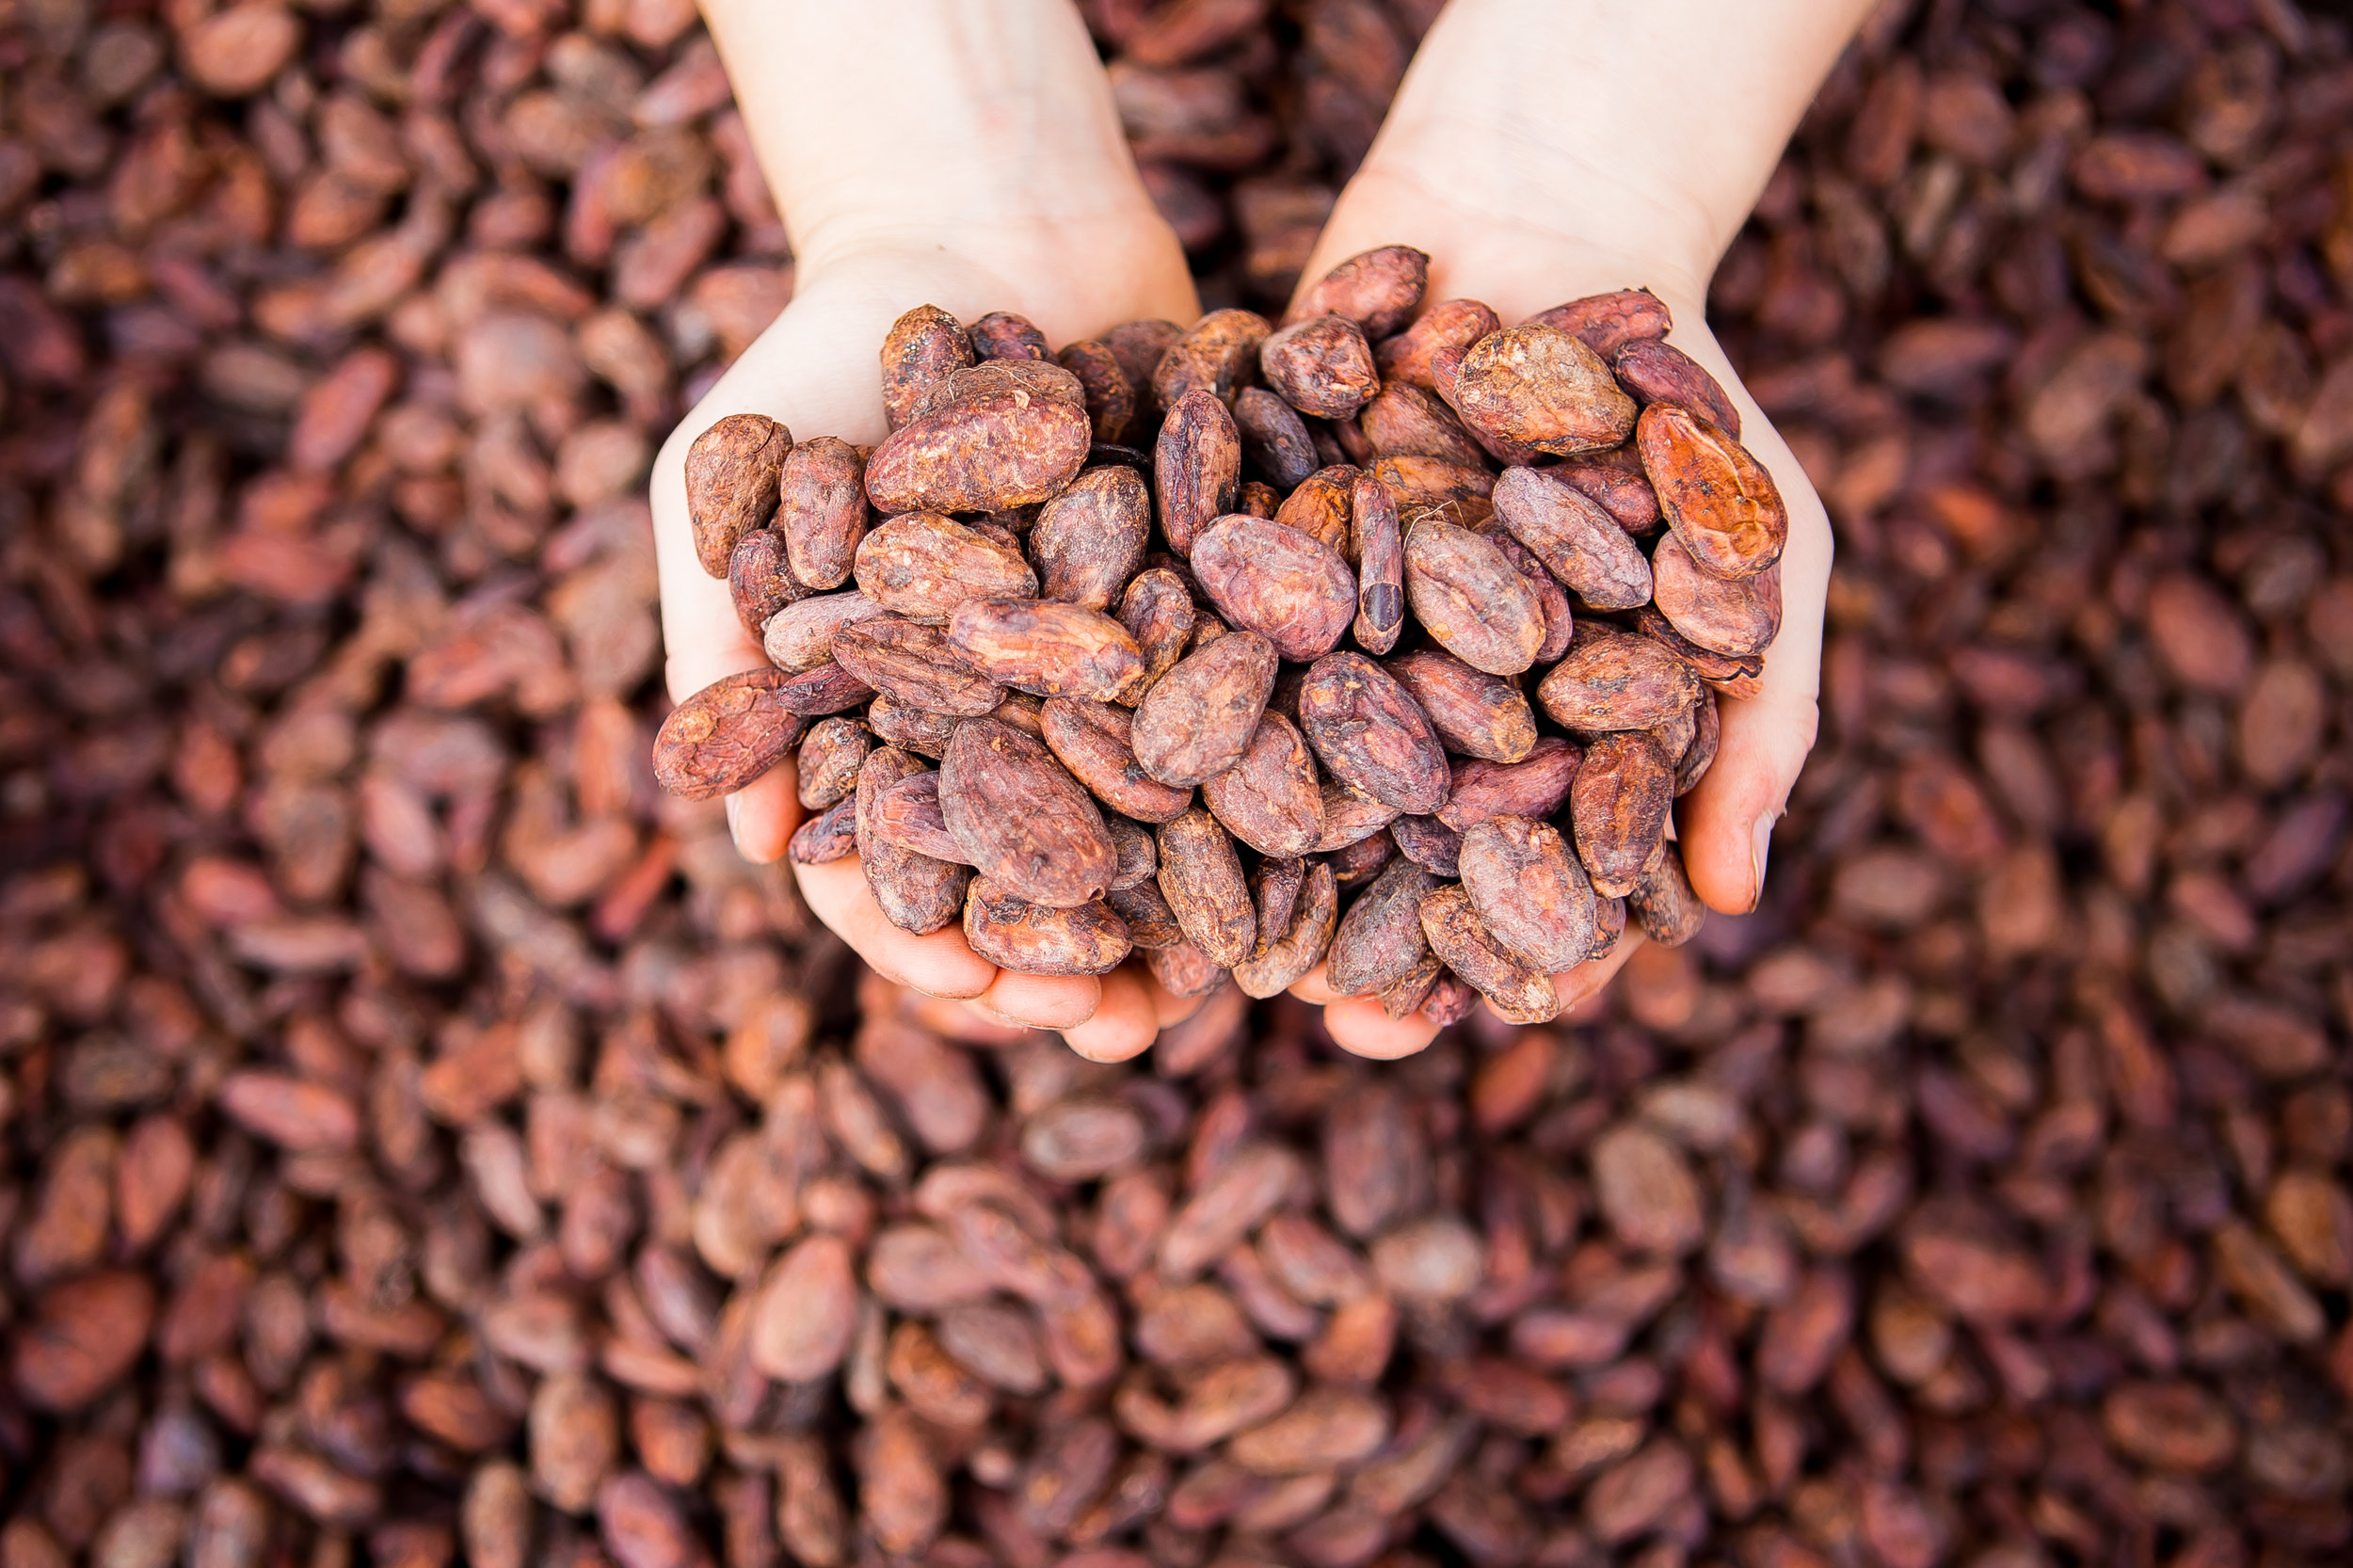 Wholesale Cacao NIBS for BEER BREWERS & BREWERIES - Tabal Chocolate works with brewers throughout the Unites States to provide single origin custom roasted cacao nibs from Peru, Colombia, Costa Rica, Nicaragua, Dominican Republic and others. Each origin will provide a unique flavor profile that brings complexity and interest to your beer or beverage.Please email us at info@TabalChocolate.com for more information.